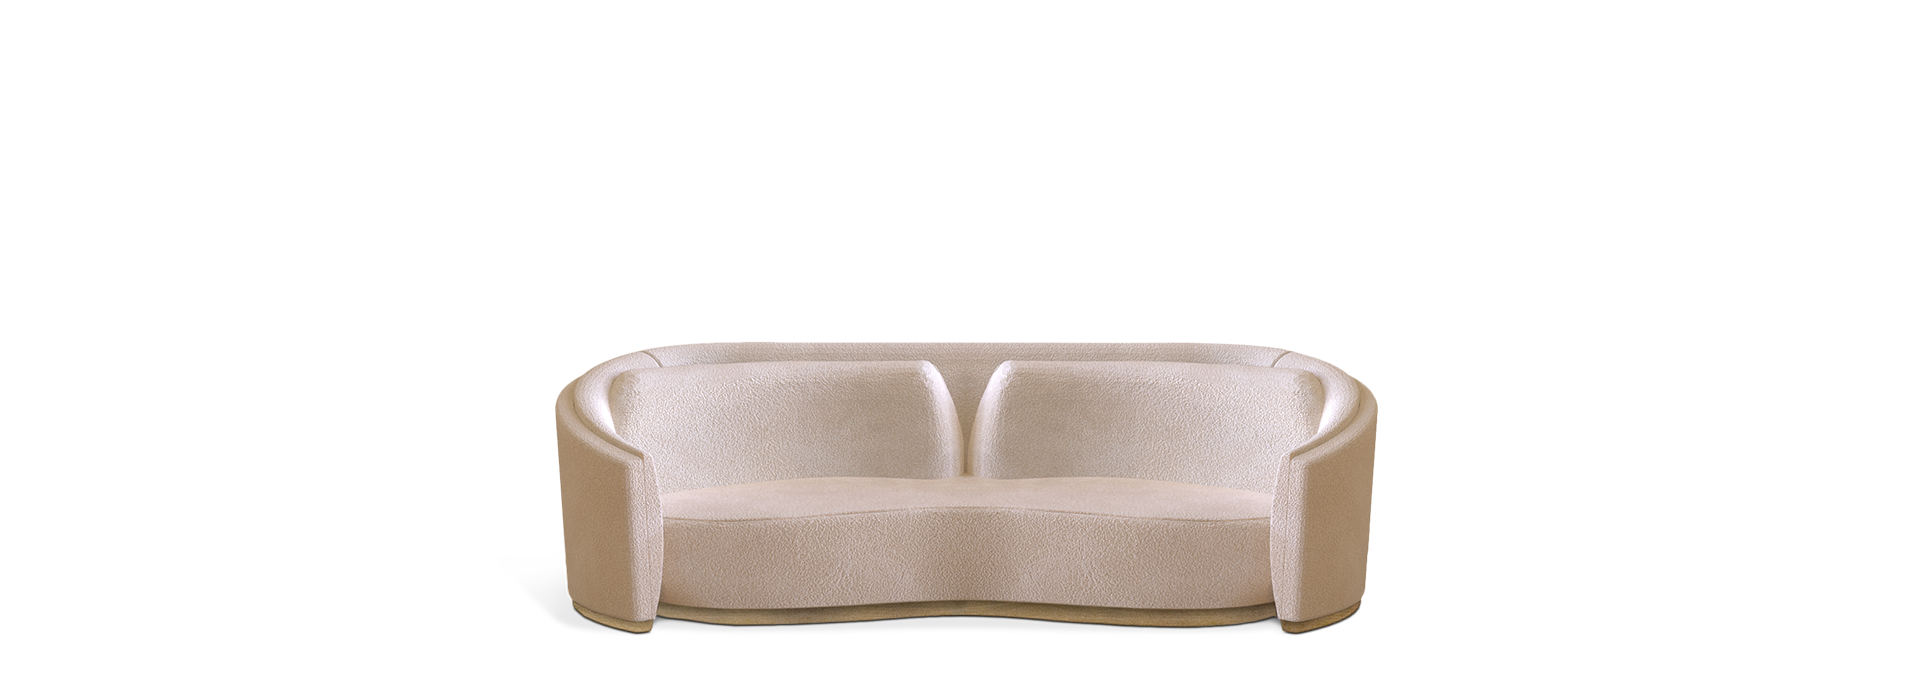 Top 25 Luxury Sofas for a Modern Living Room